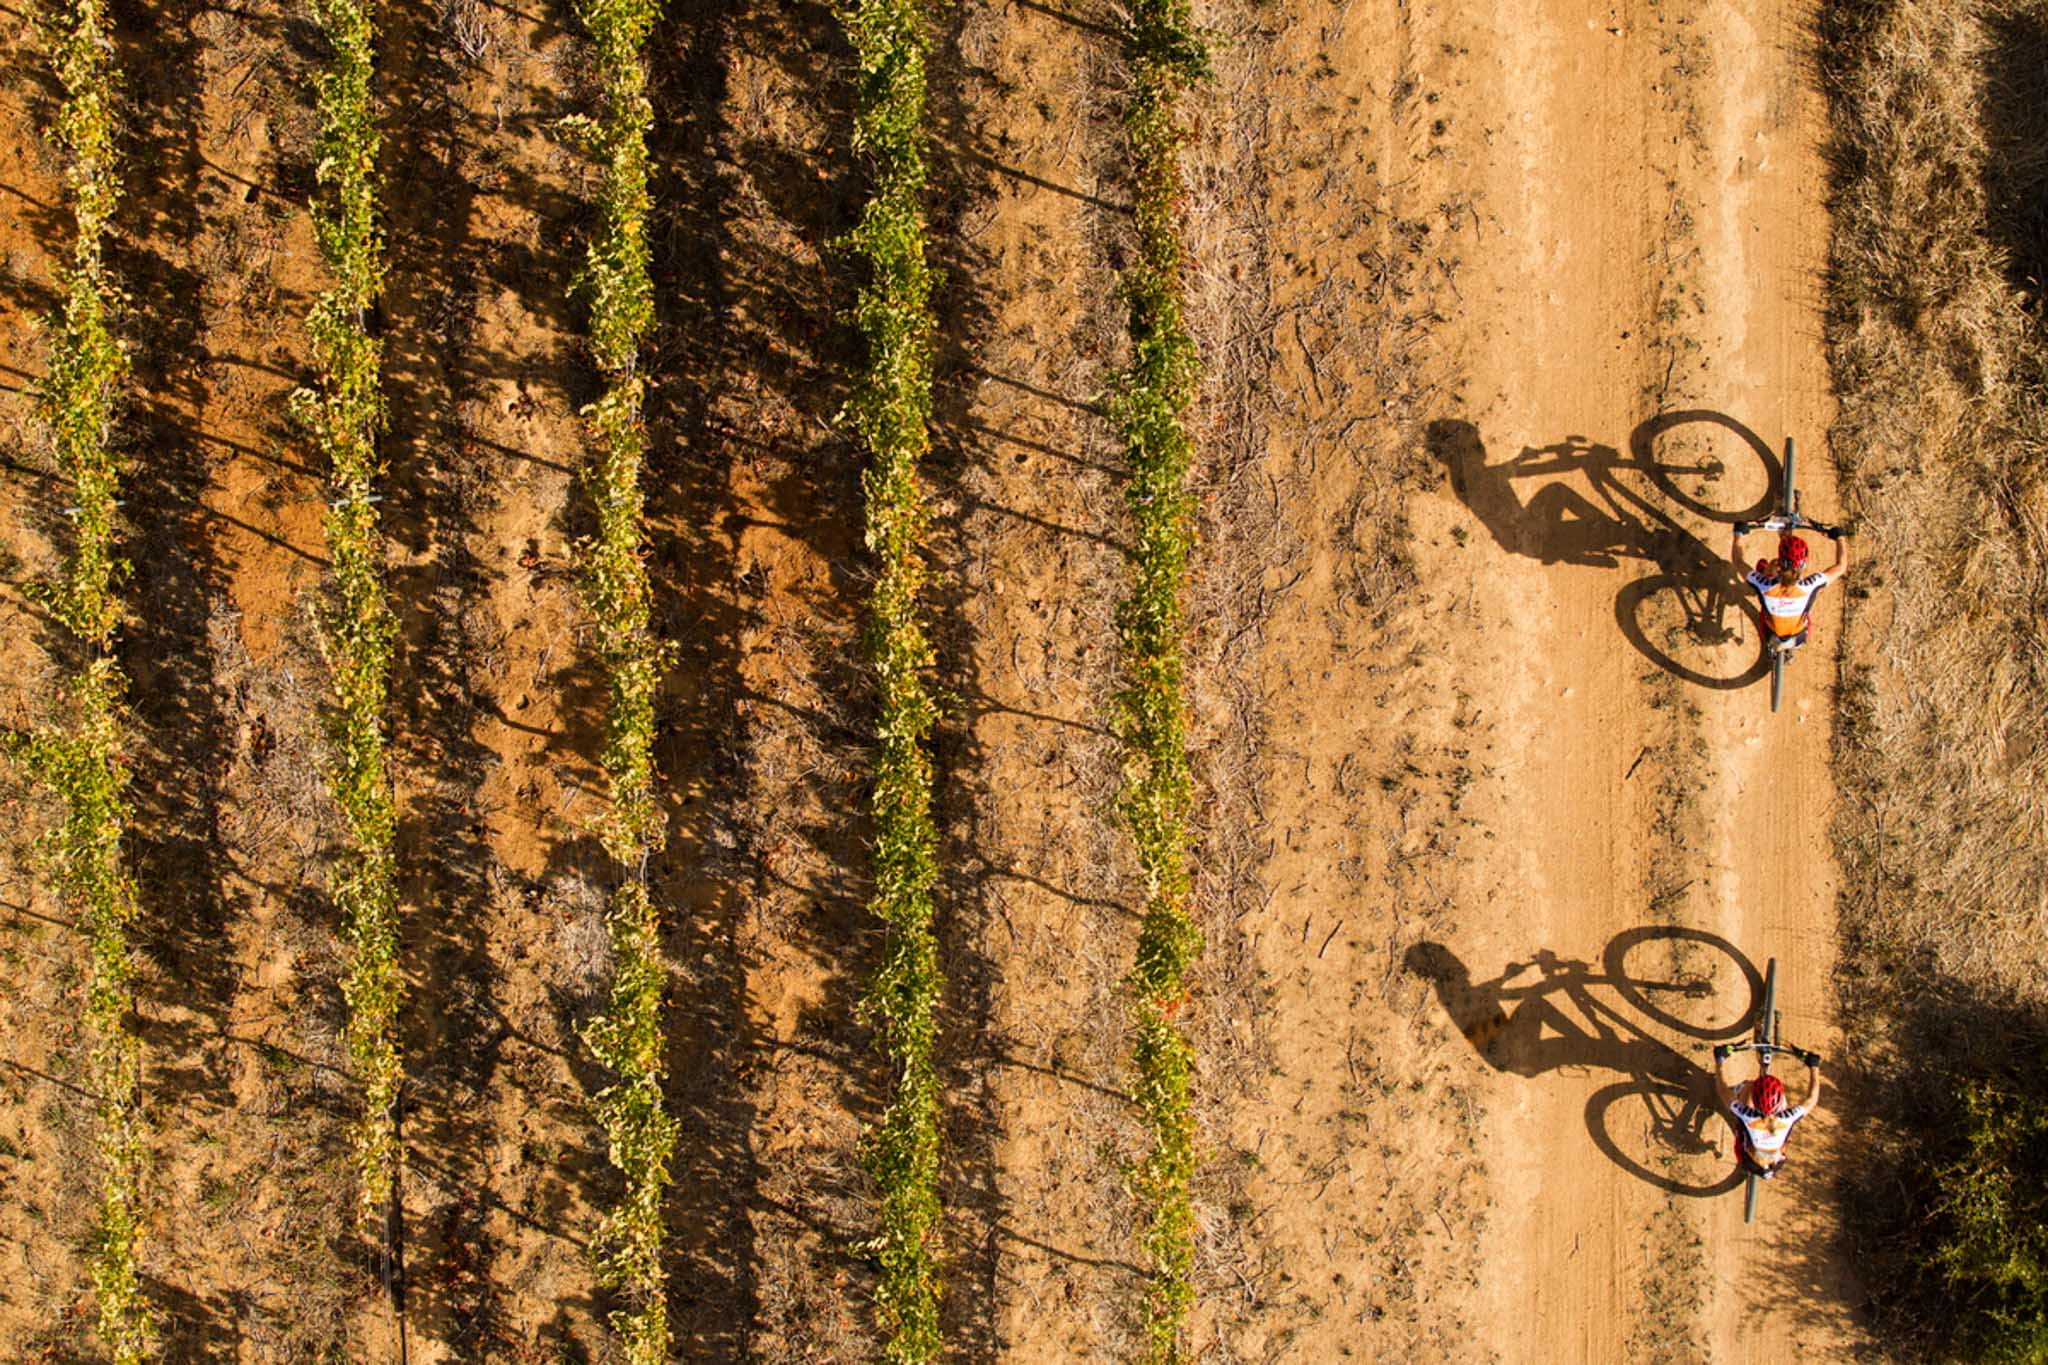 Overall womens winners Annika Langvad & Ariane Kleinhans of Spur-Specialized during the final stage (stage 7) of the 2016 Absa Cape Epic Mountain Bike stage race from Boschendal in Stellenbosch to Meerendal Wine Estate in Durbanville, South Africa on the 20th March 2016 Photo by Gary Perkin/Cape Epic/SPORTZPICS PLEASE ENSURE THE APPROPRIATE CREDIT IS GIVEN TO THE PHOTOGRAPHER AND SPORTZPICS ALONG WITH THE ABSA CAPE EPIC ace2016